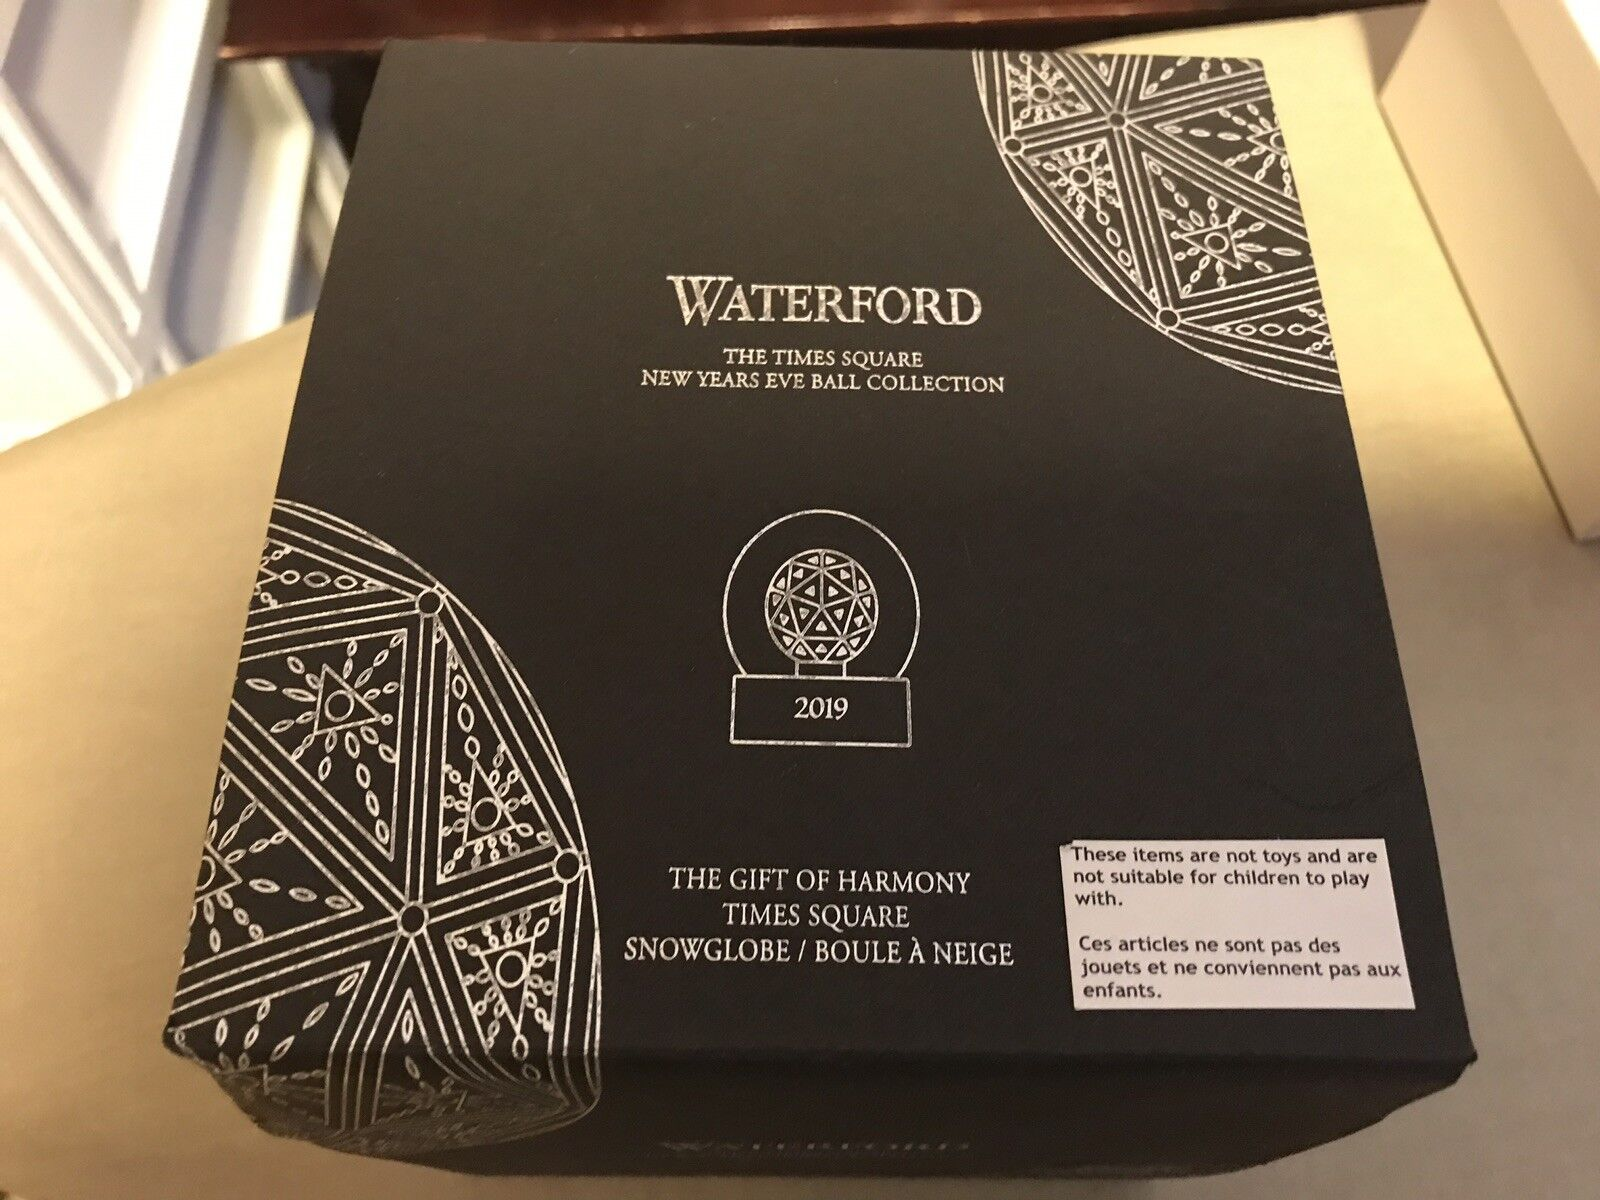 Waterford Crystal 2019 2019 2019 Times Square Snowglobe This Could Be The Last One. 1355b4